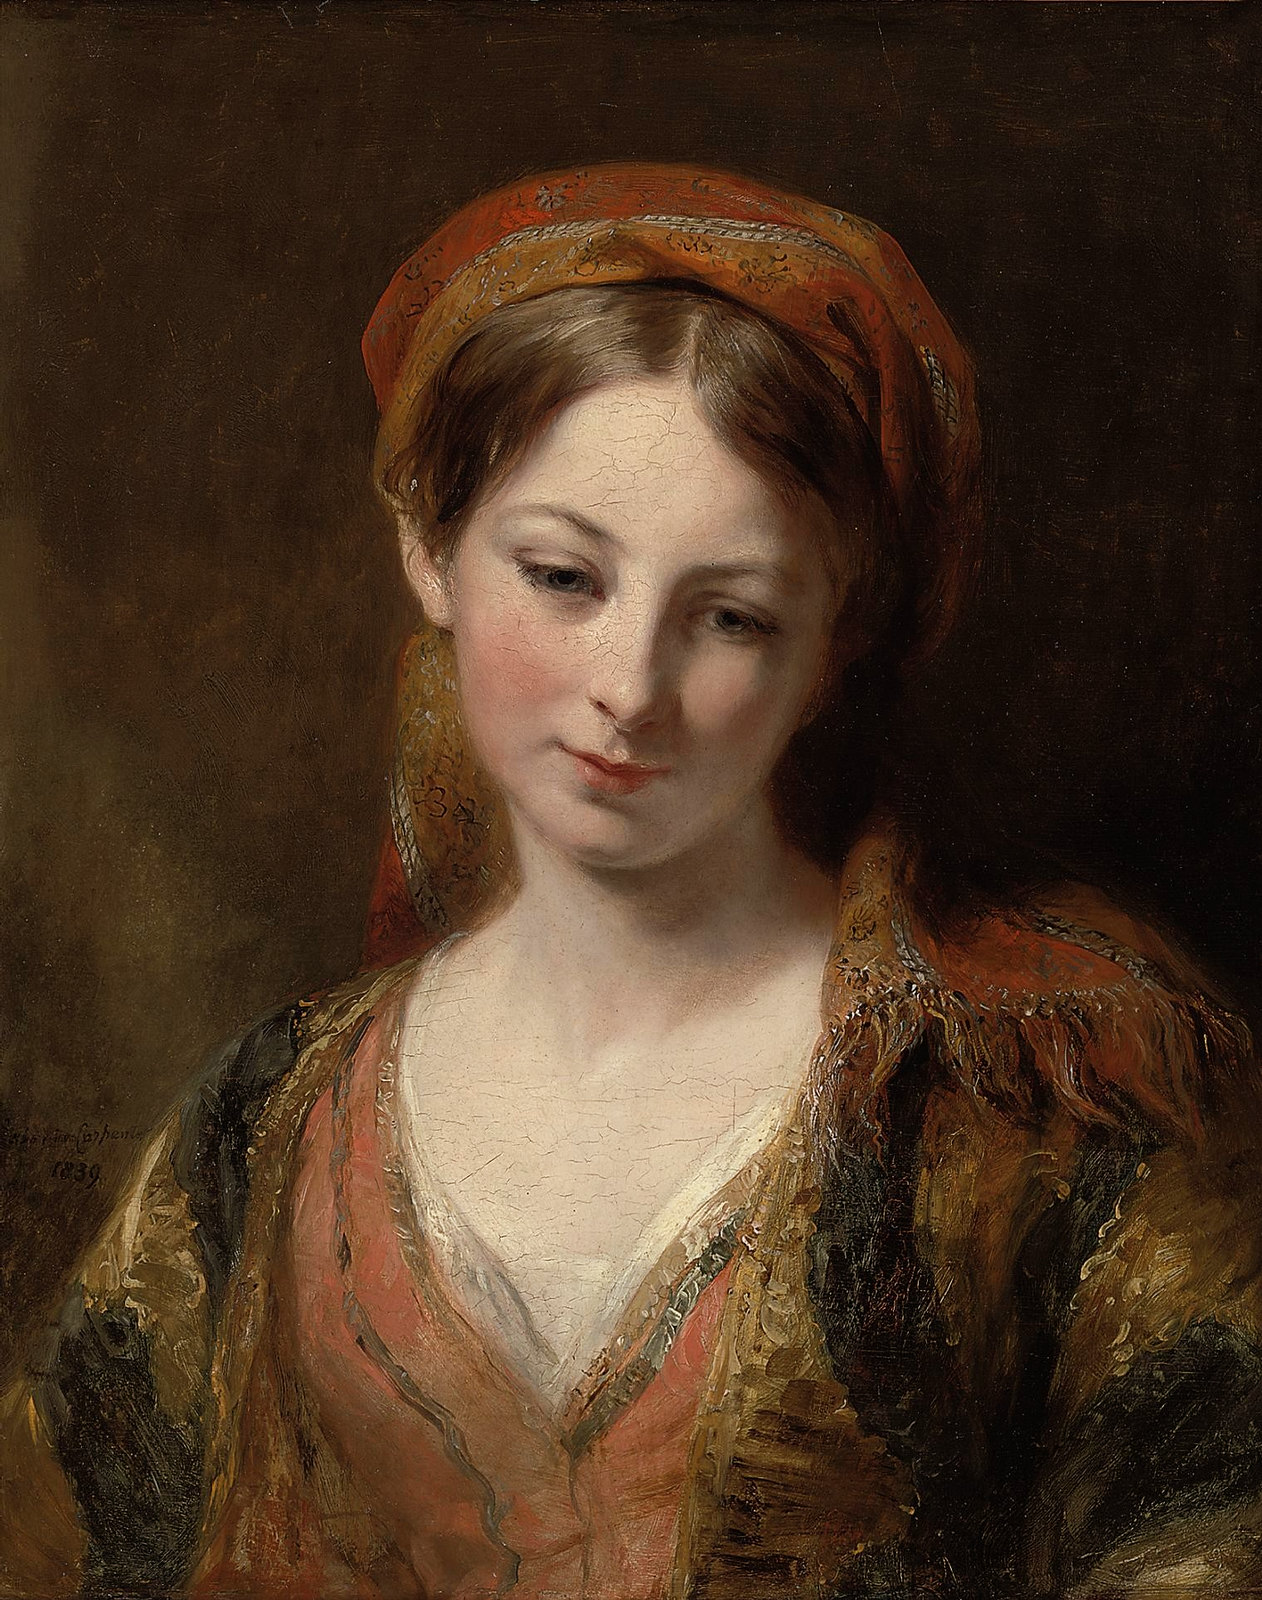 Portrait of a Young Girl by Margaret Sarah Carpenter, 1839